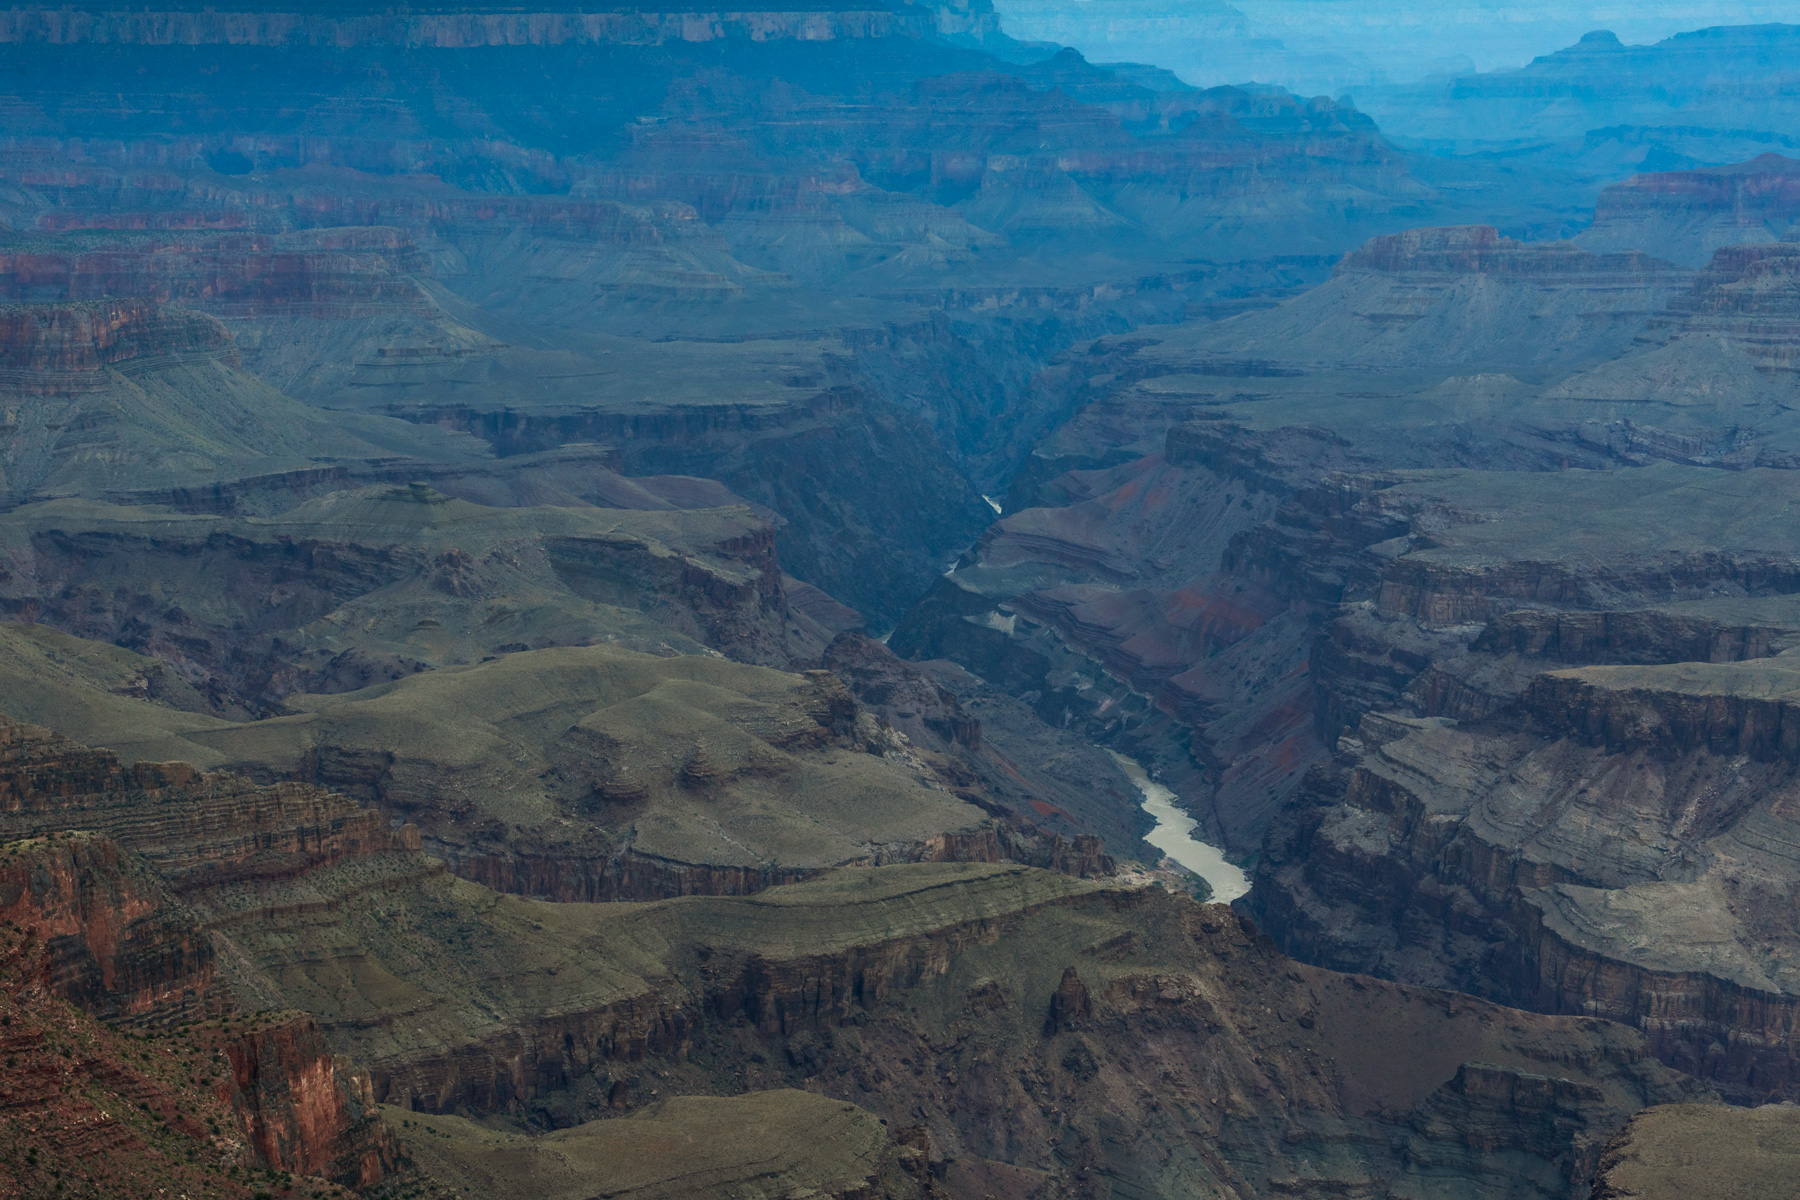 Grand-Canyon-South-Rim-at-dusk.jpg